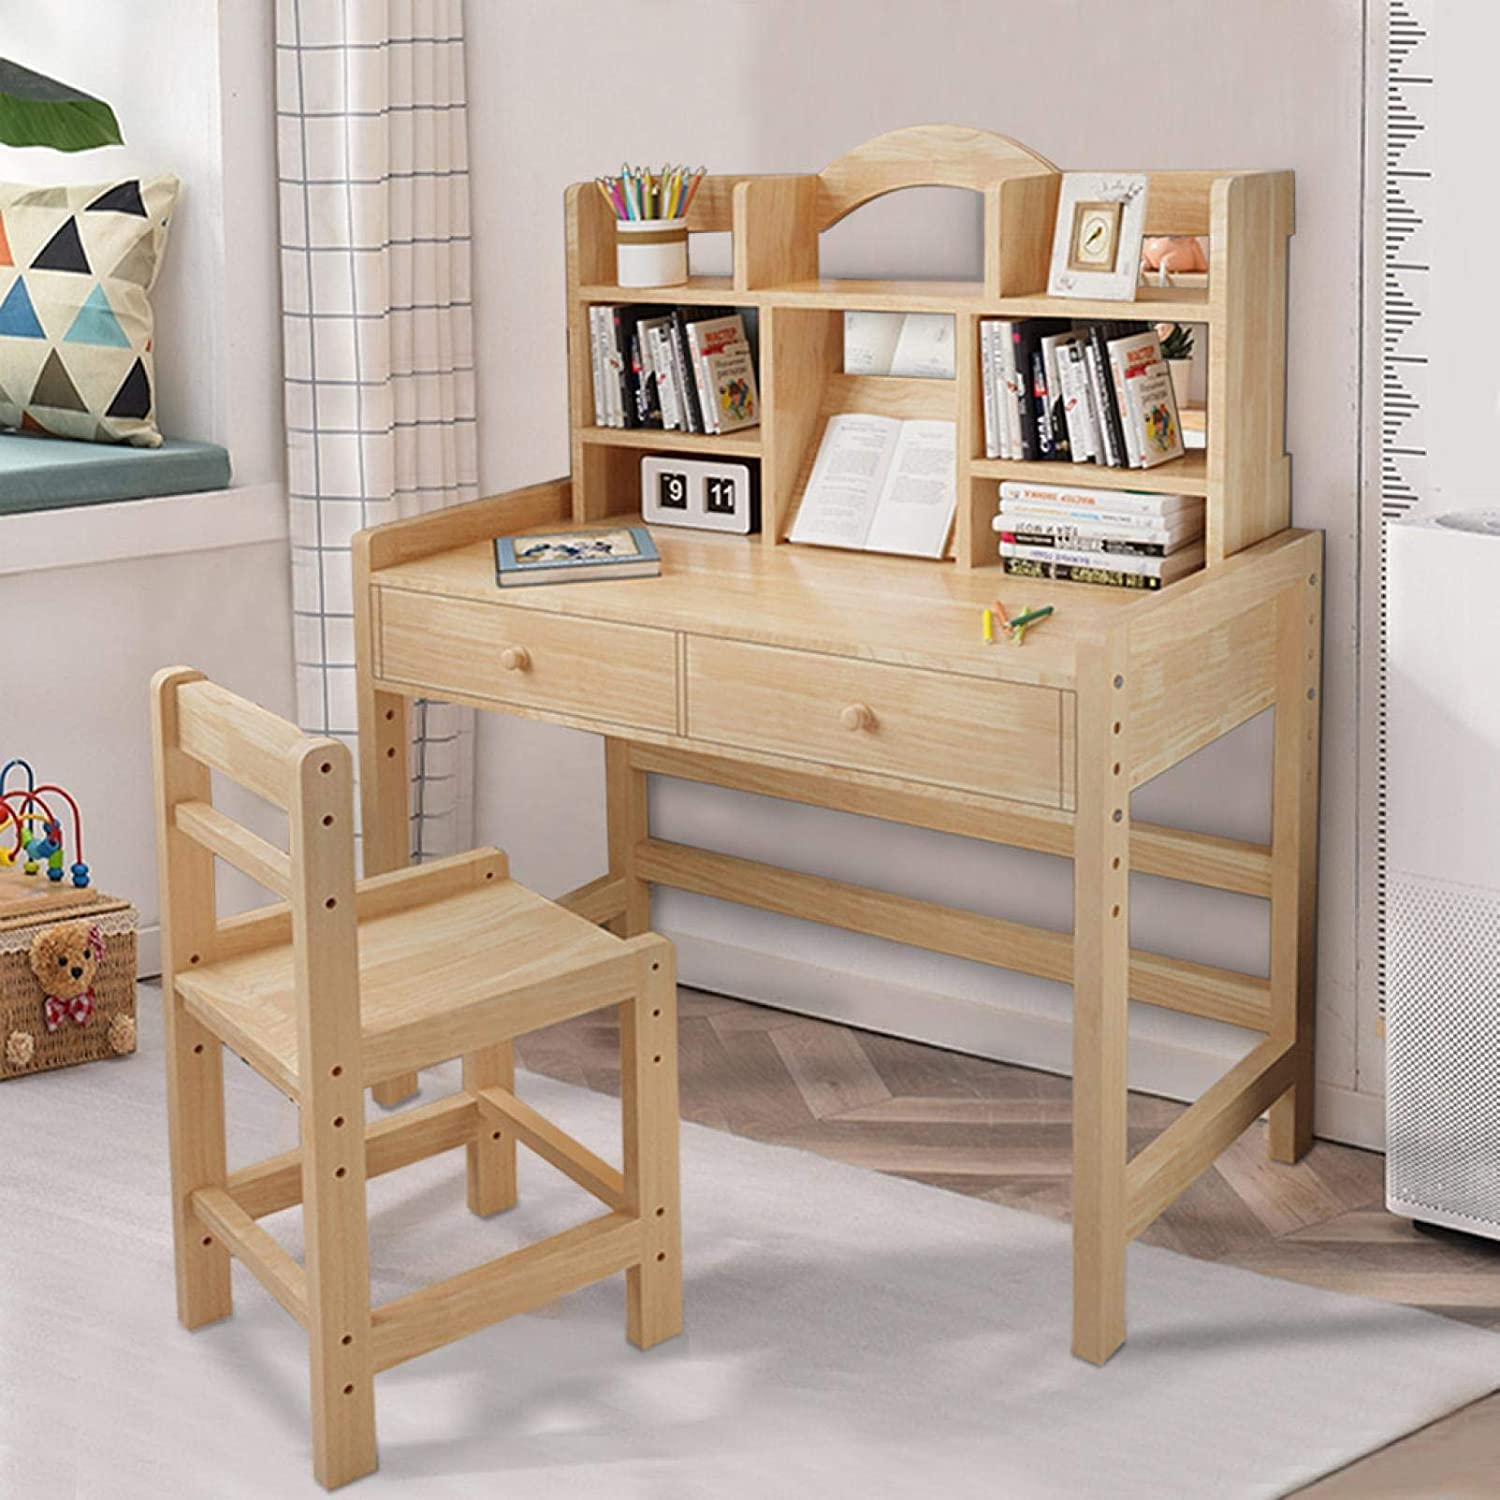 U.S. Shipping Wooden Kids Bedroom Furniture Wooden Student Desk and Chair Set with Drawers and Bookshelves Adjustable Height Table and Chair Set Students Study Computer Workstation